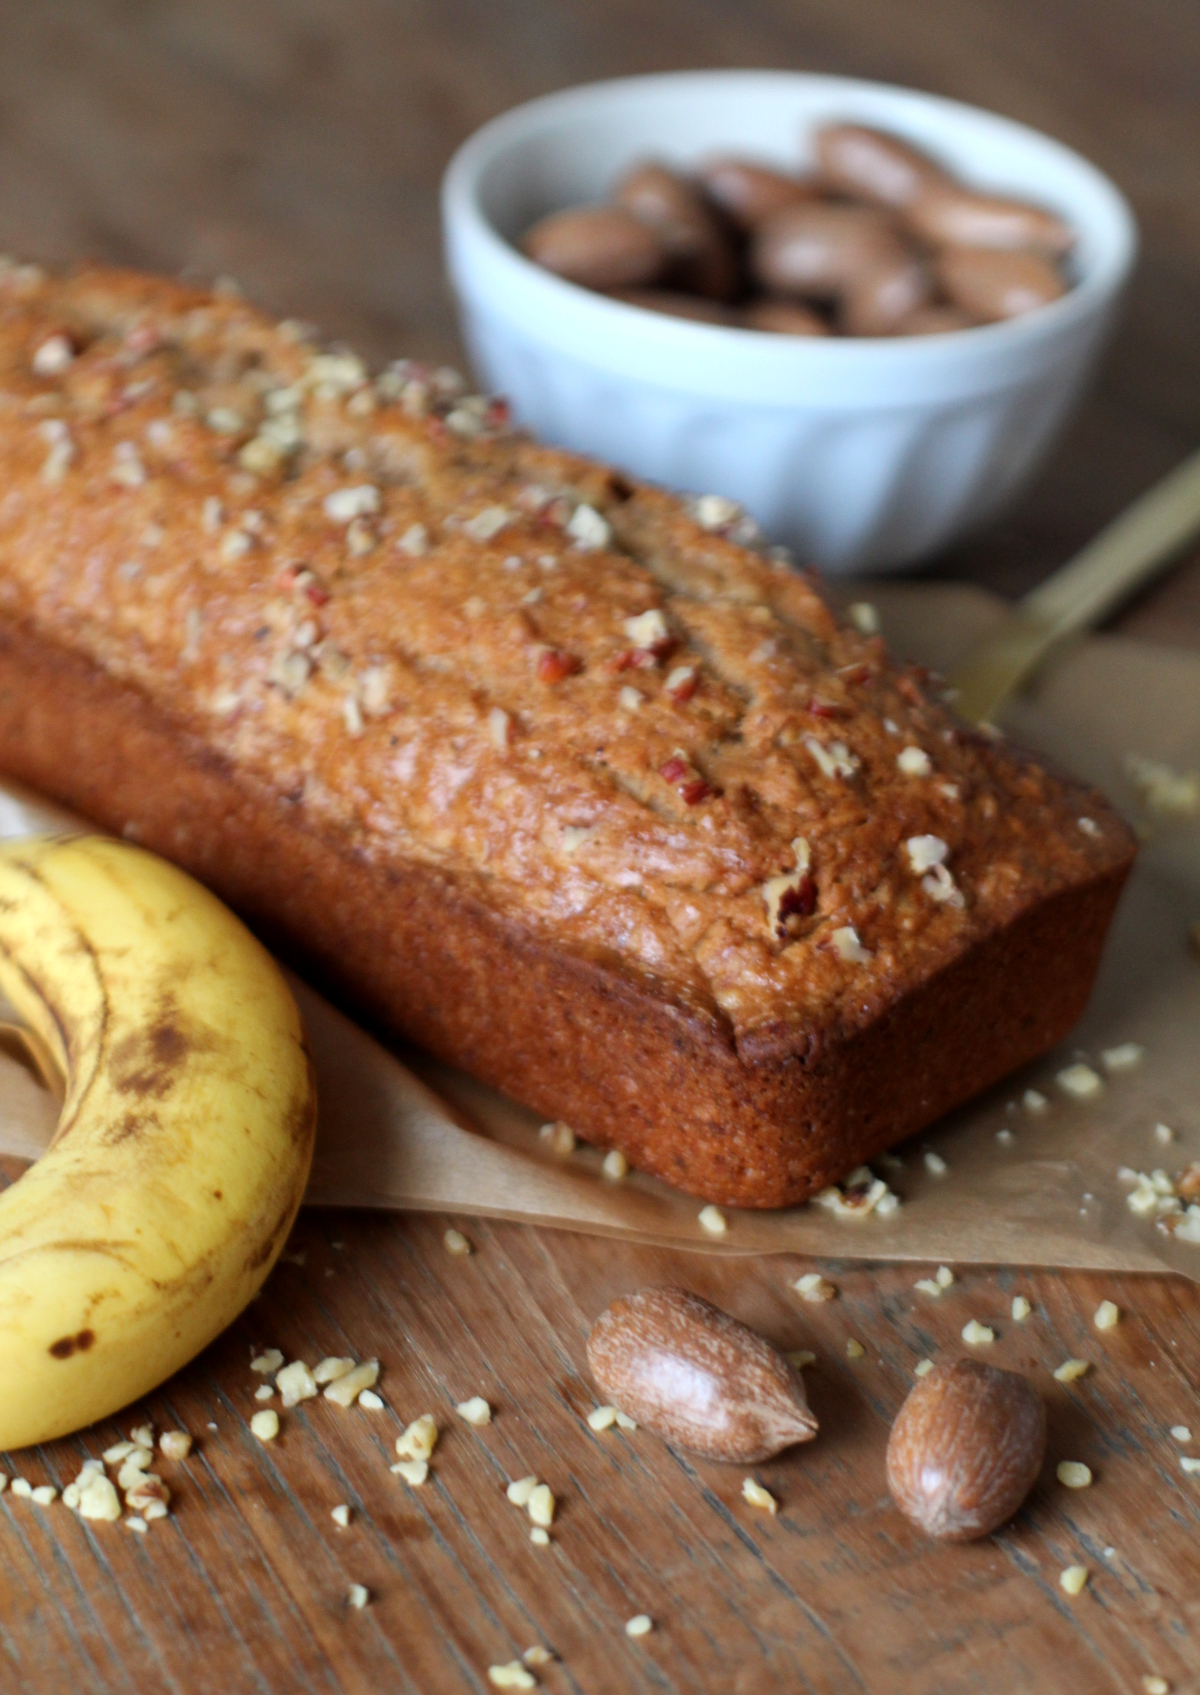 starbucks-banana-walnut-bread-homemade-recipe